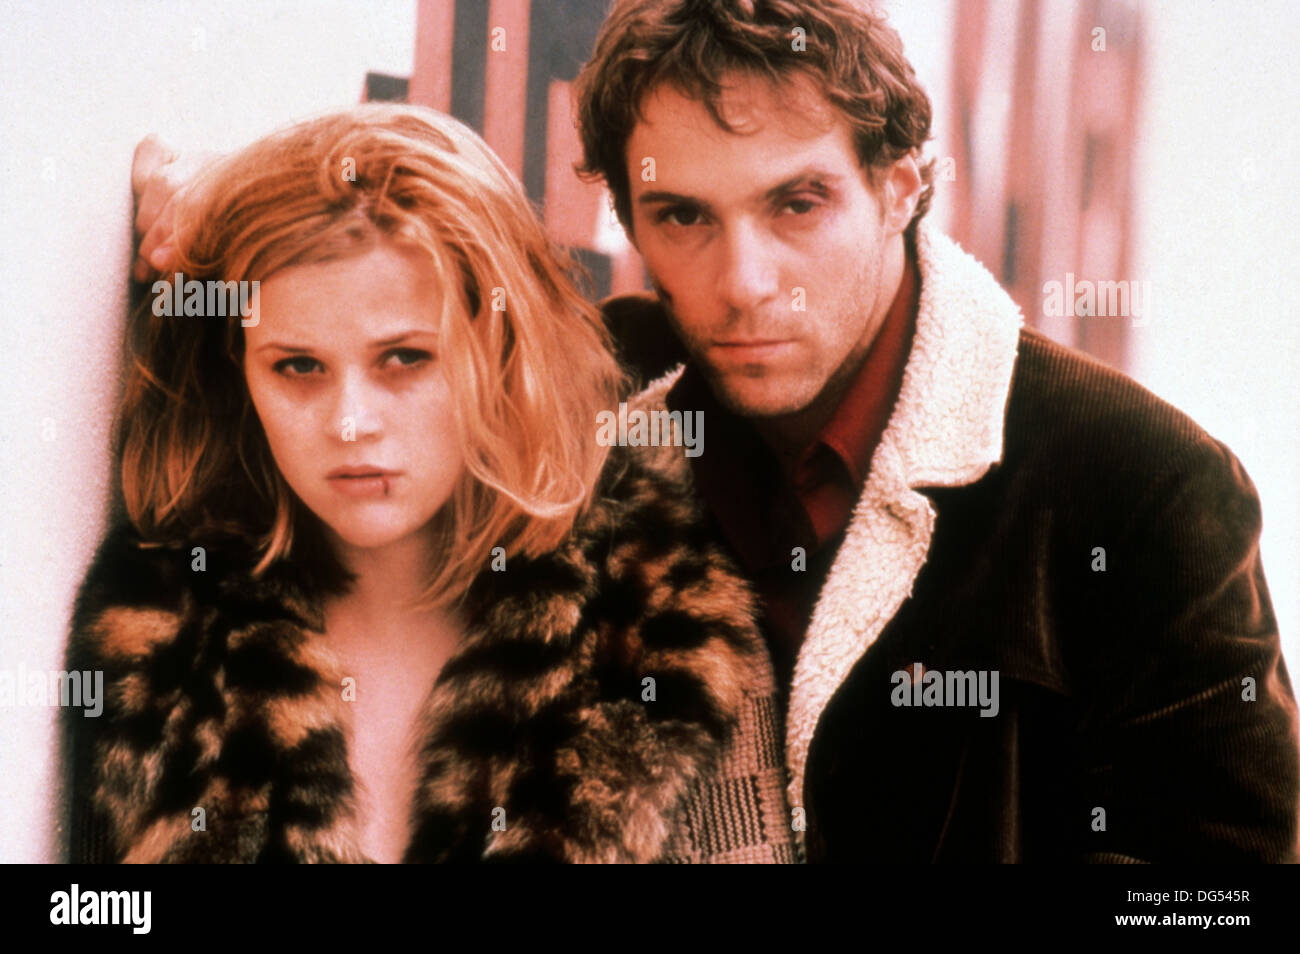 BEST LAID PLANS 1999) REESE WITHERSPOON, ALESSANDRO NIVOLA, MIKE BARKER DIR) BLPL 001 MOVIESTORE COLLECTION LTD - Stock Image